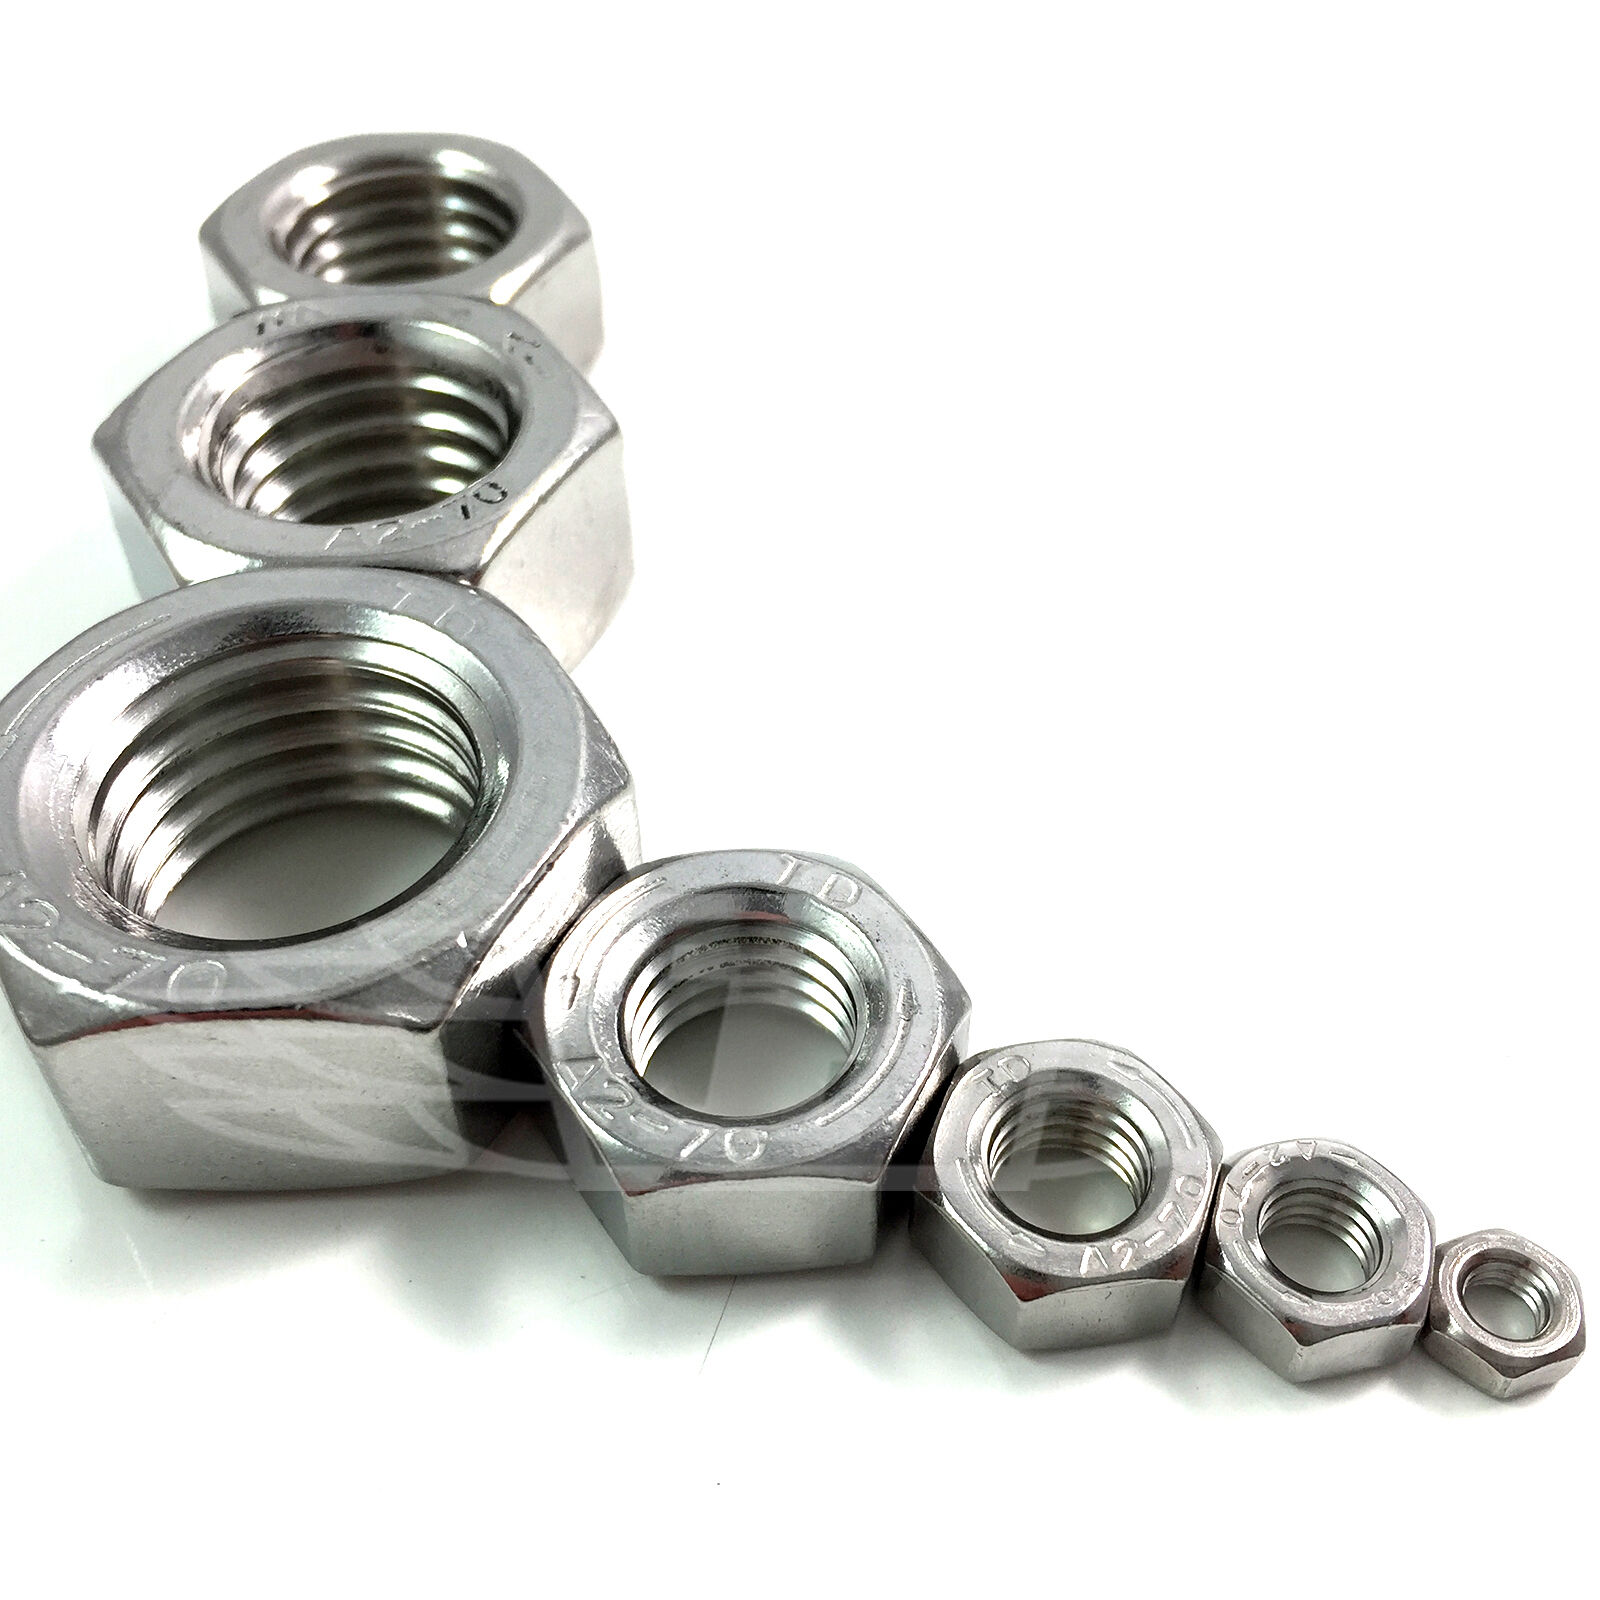 M8 Hex Nut 4 A4 Stainless Steel Left hand thread DIN934 Pack Size